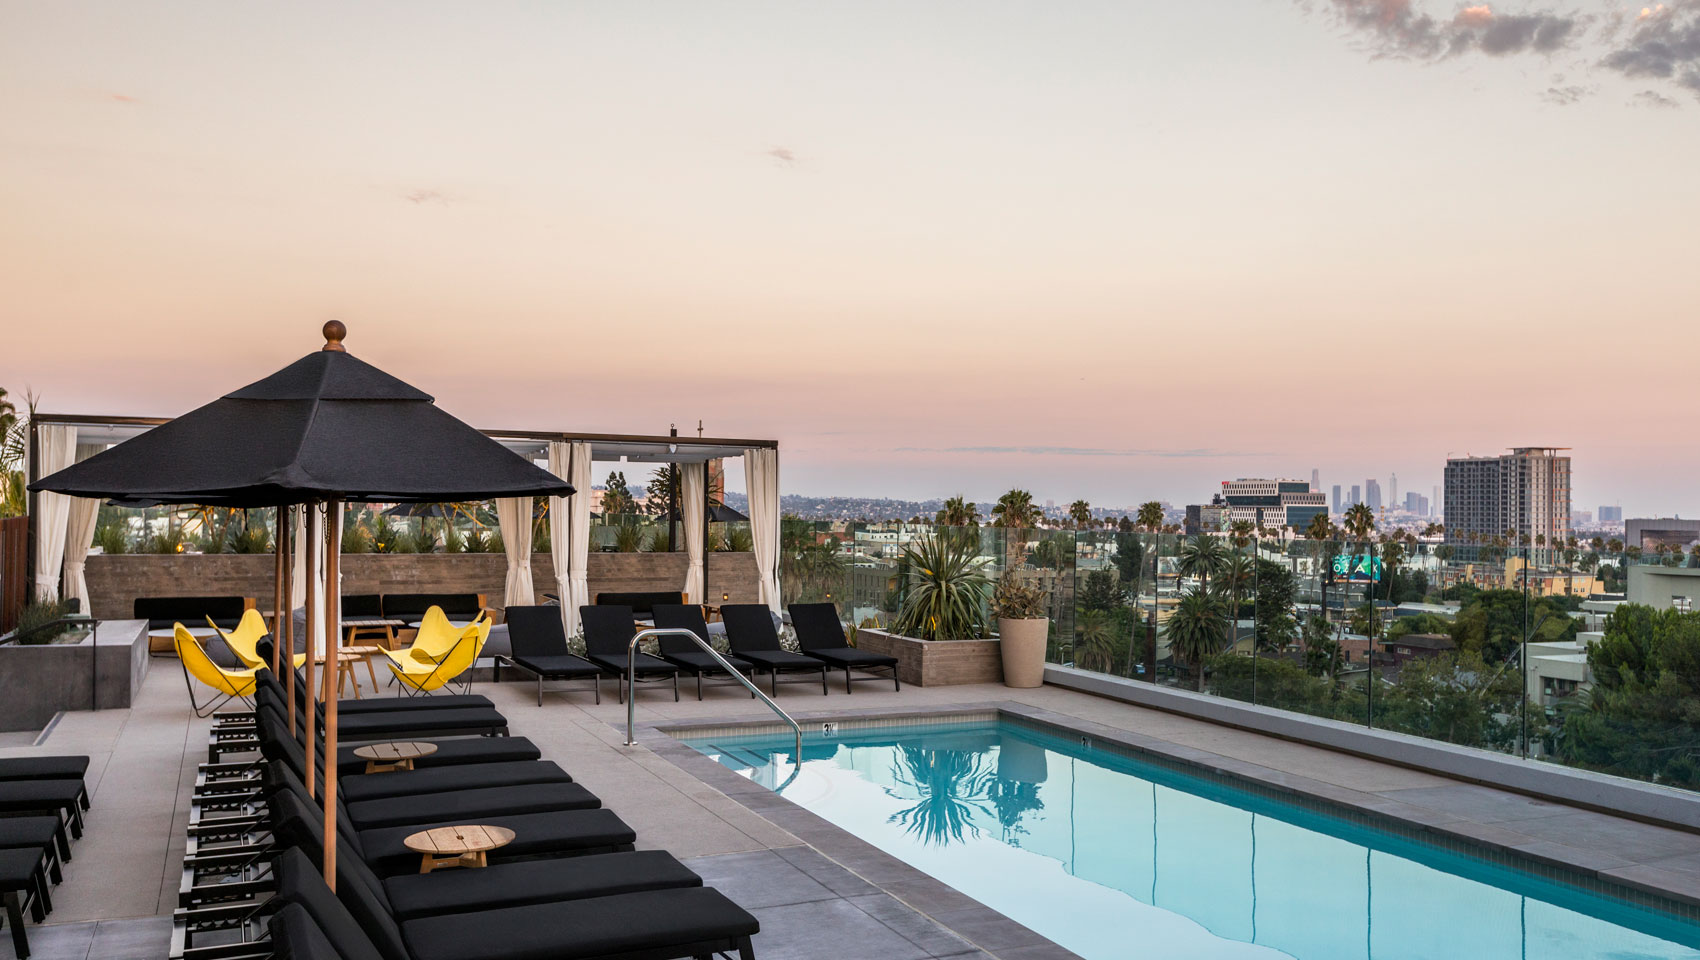 rooftop-pool-lounge-everly-hollywood-9fea9dd1.jpg